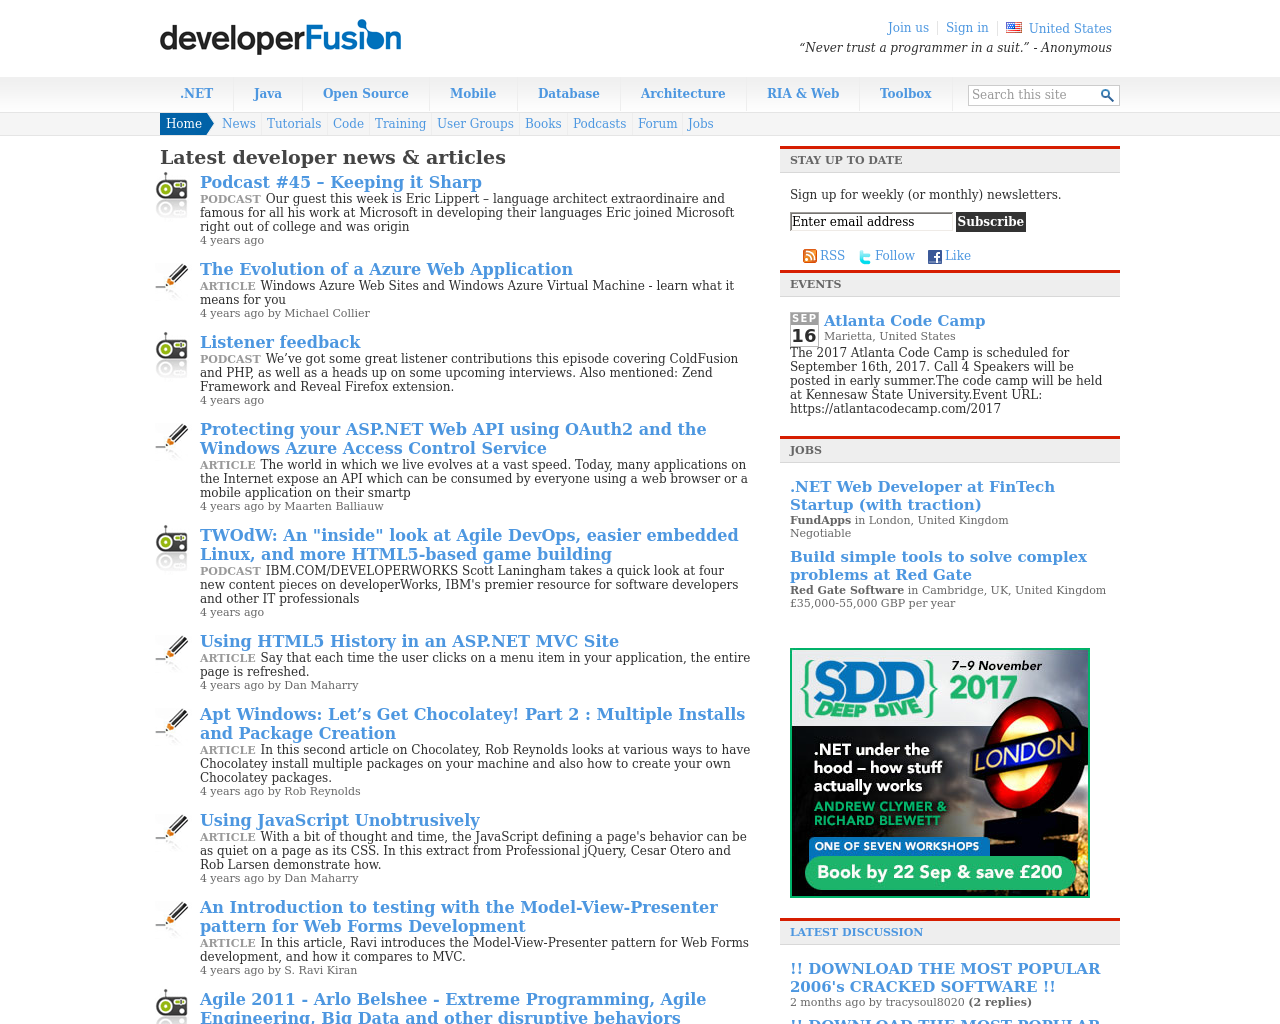 developerFusion-Advertising-Reviews-Pricing